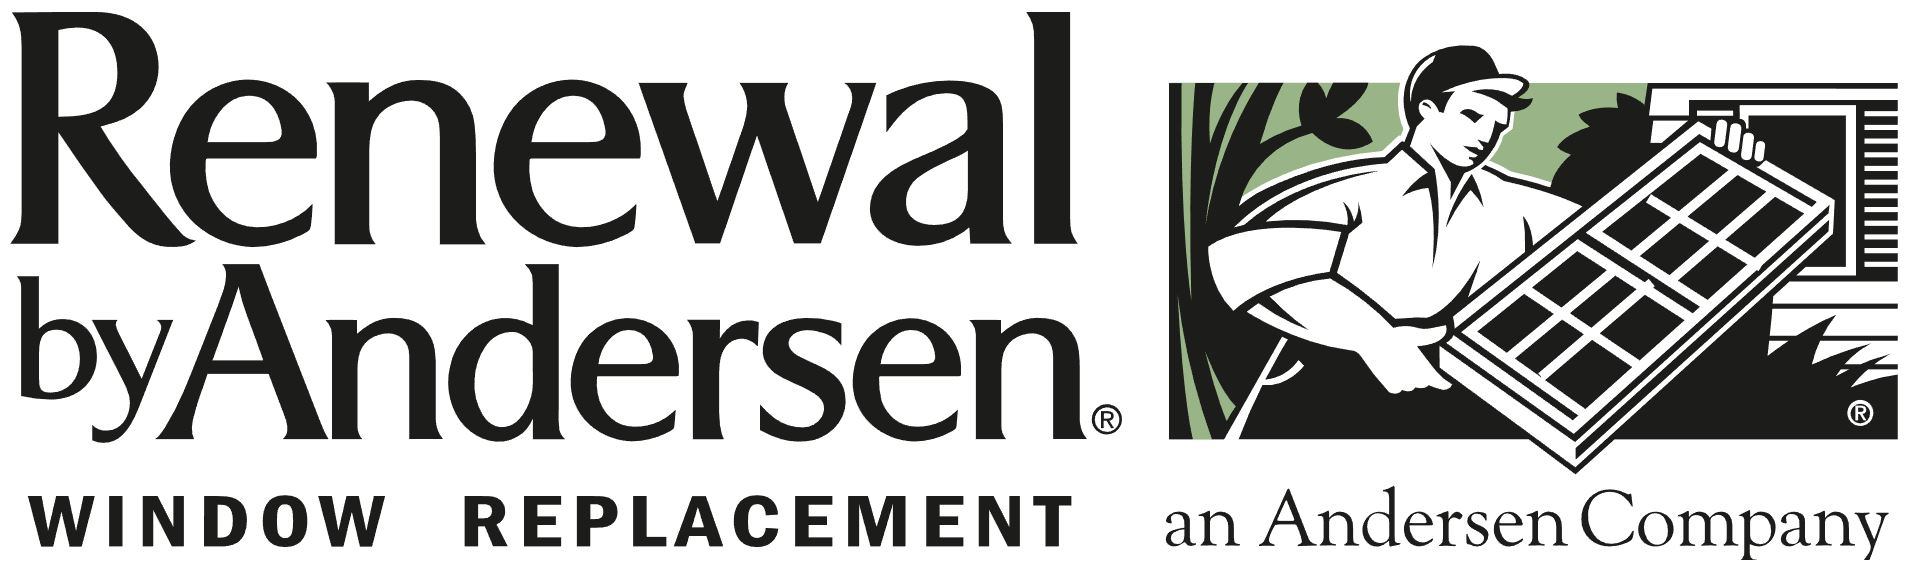 Renewal by Anderson of Greater Charlotte